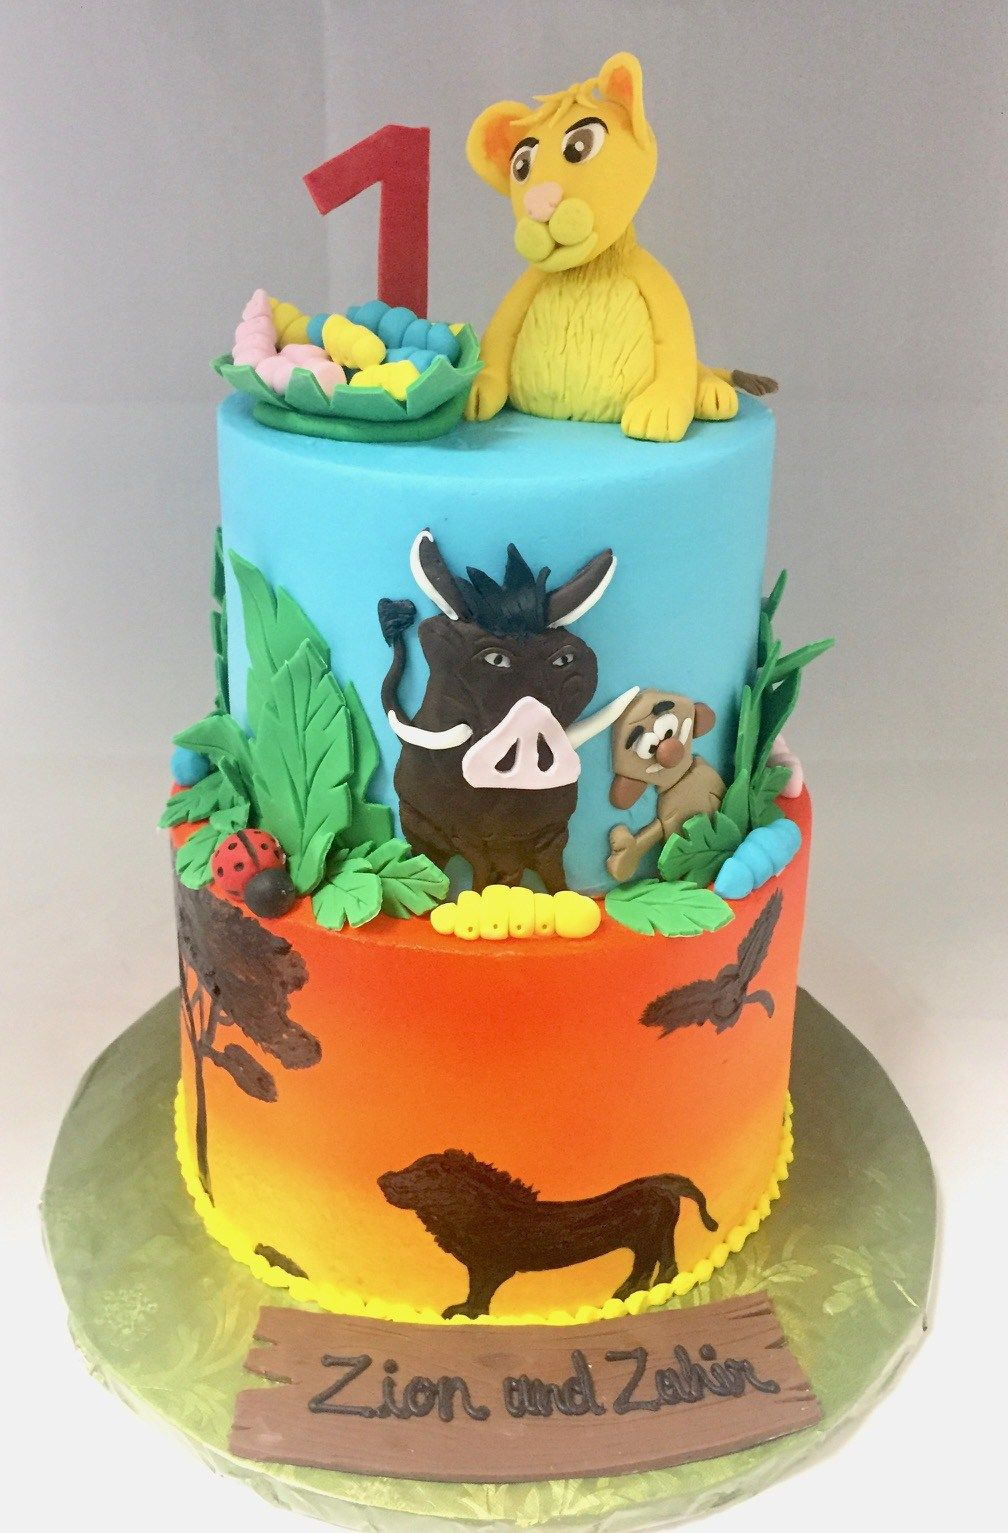 2 Tier Lion King 1st Birthday Cake Confection Perfection Cakes